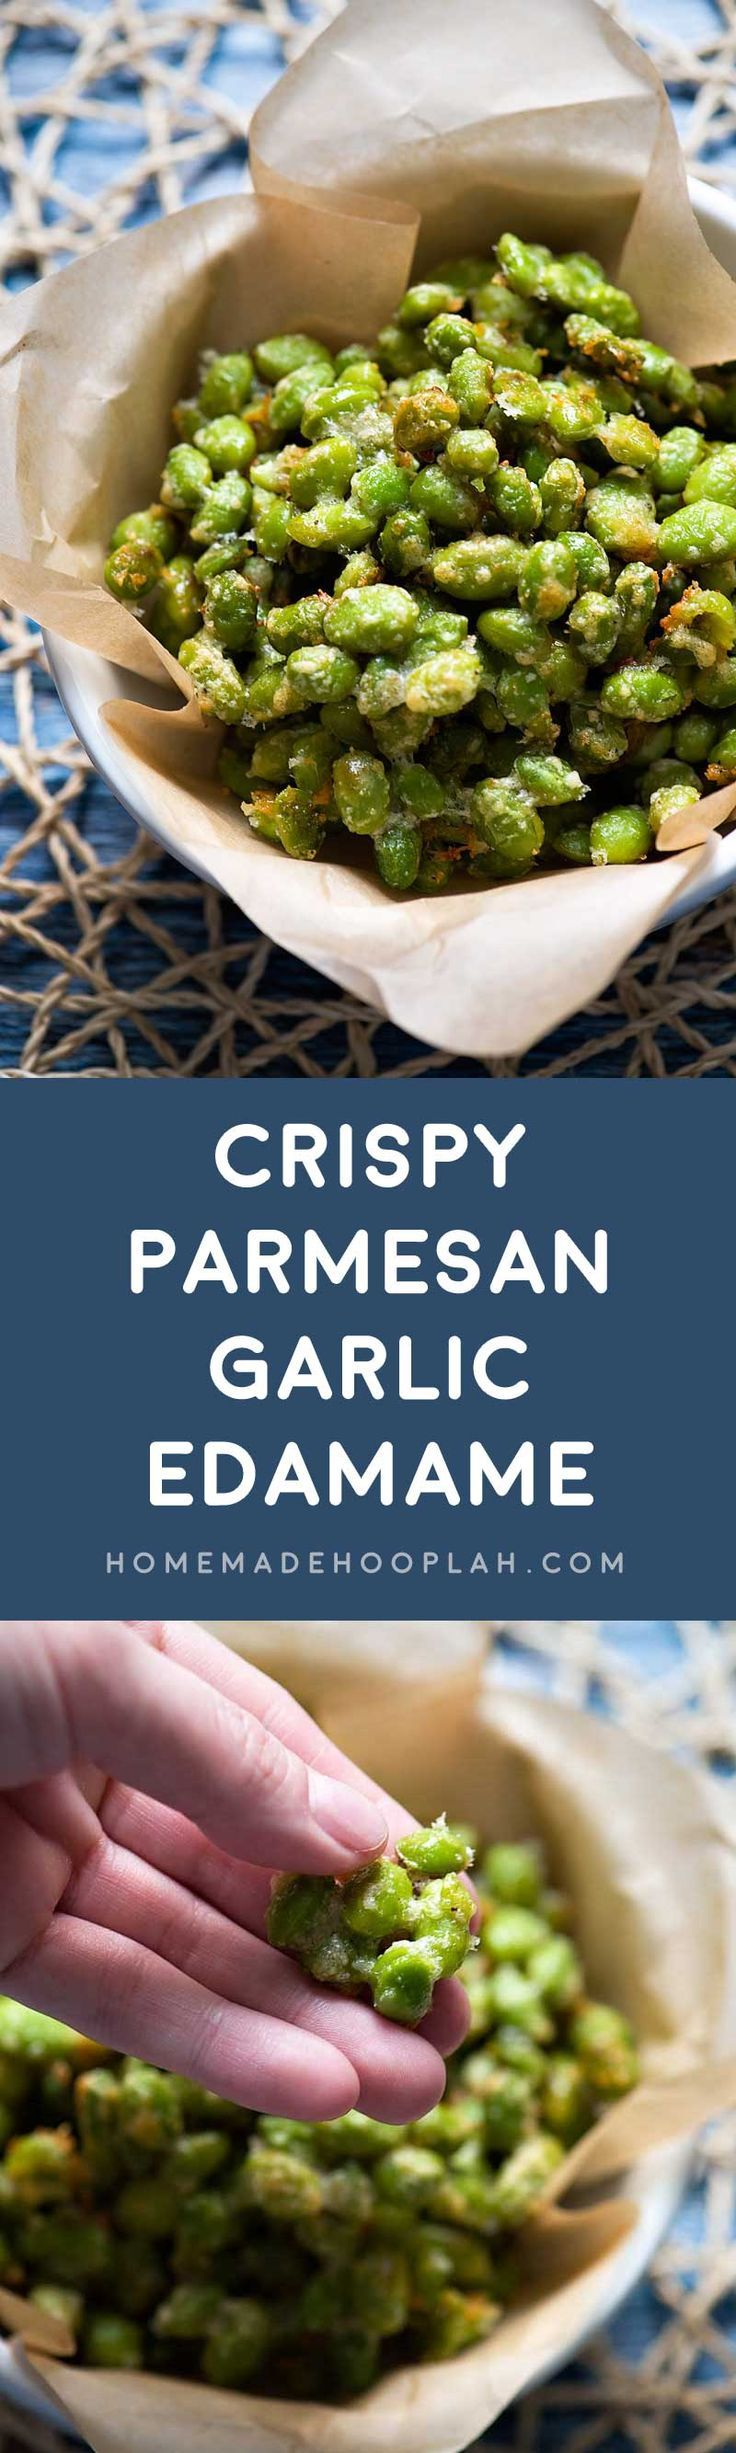 Crispy Parmesan Garlic Edamame! Baked in the oven, this edamame recipe is a tasty snack with only 123 calories! | http://HomemadeHooplah.com